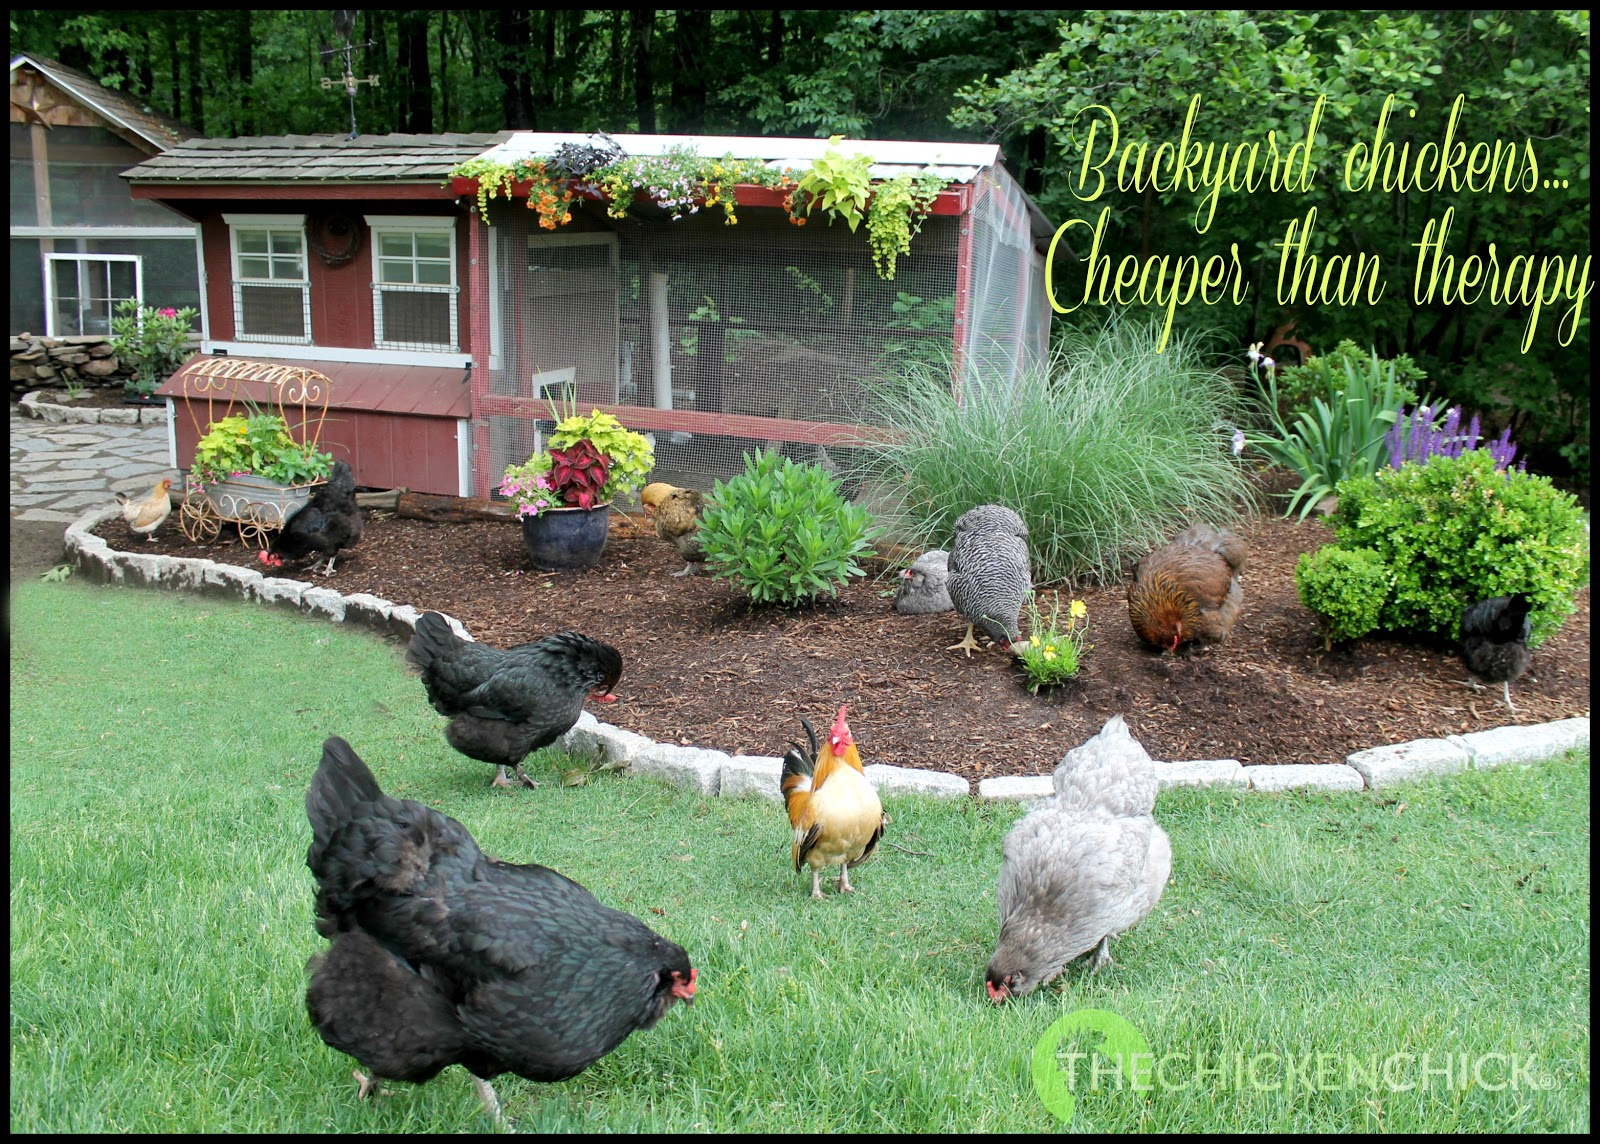 Farm & Country Radio Interview with The Chicken Chick ...